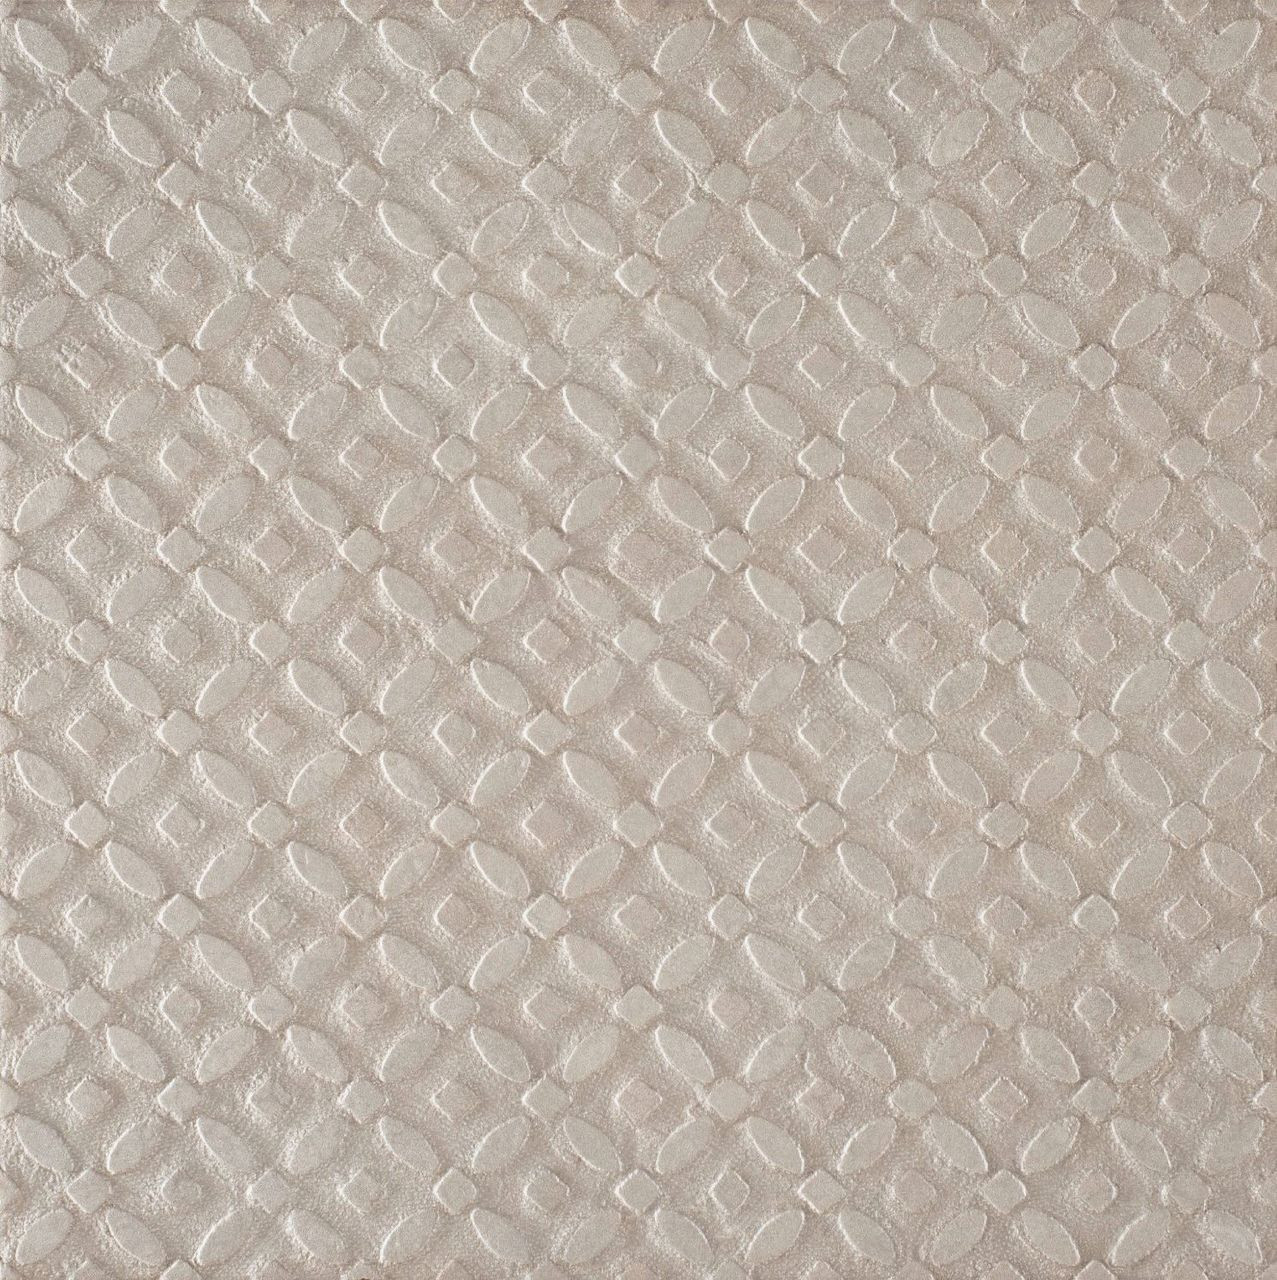 Calzada Perla Decor 24x 24 Porcelain Tile